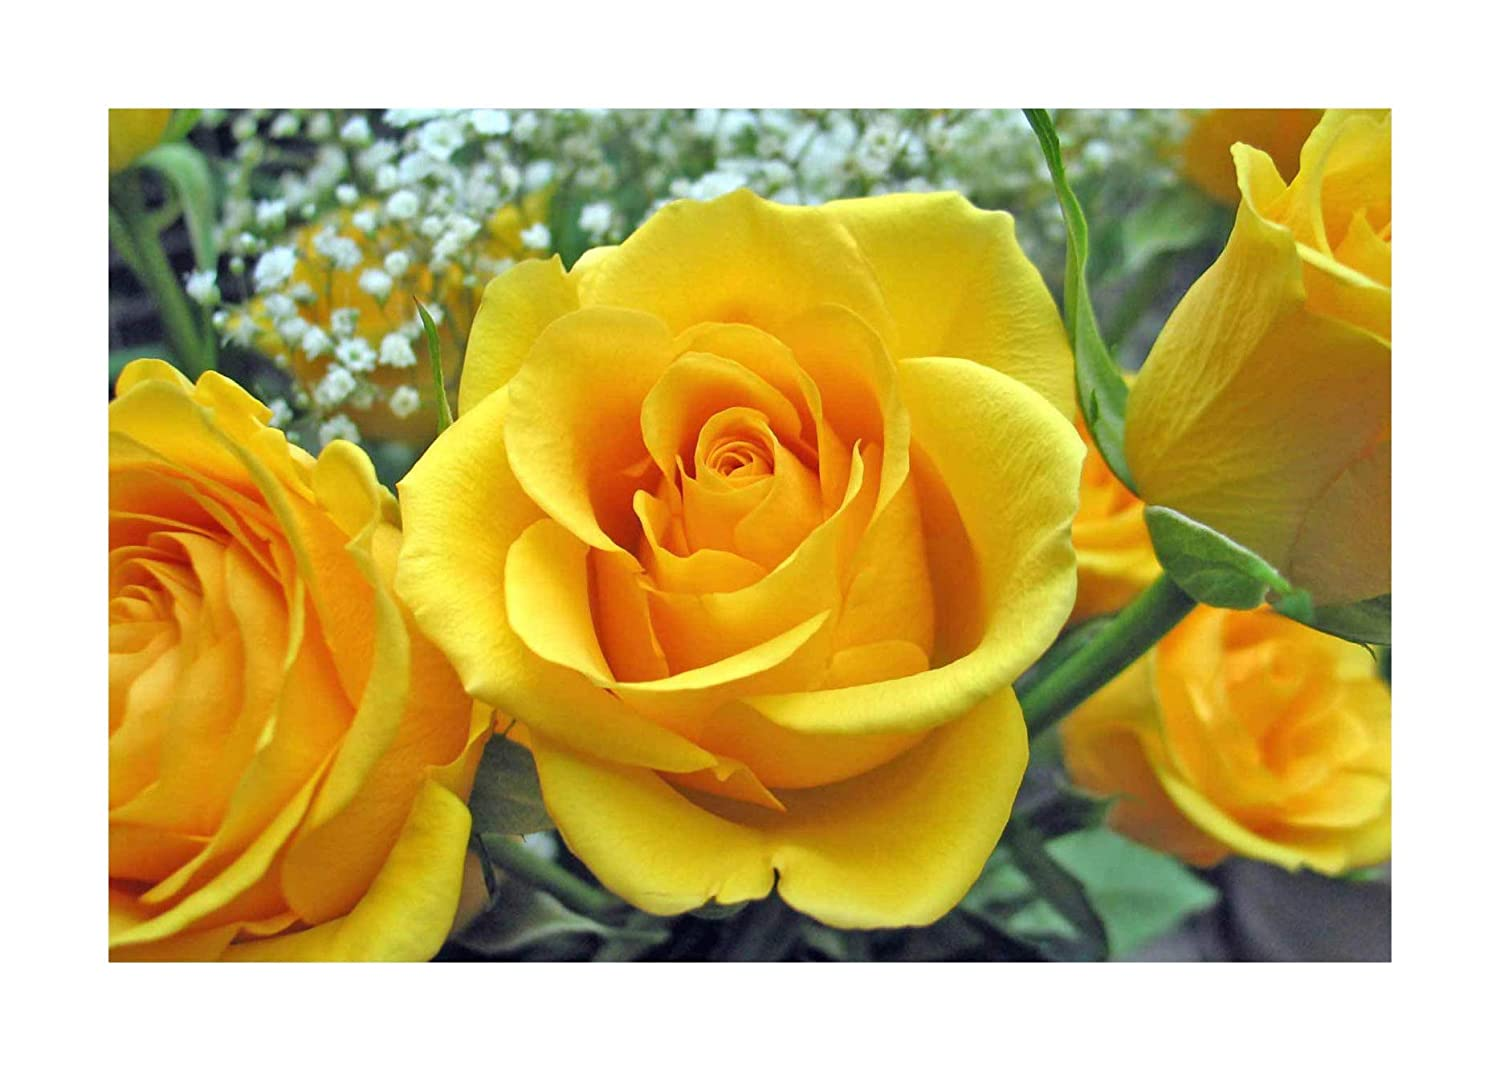 Yellow Rose Hybrid Tea Bare Root Plant by Plug Plants Express Limited